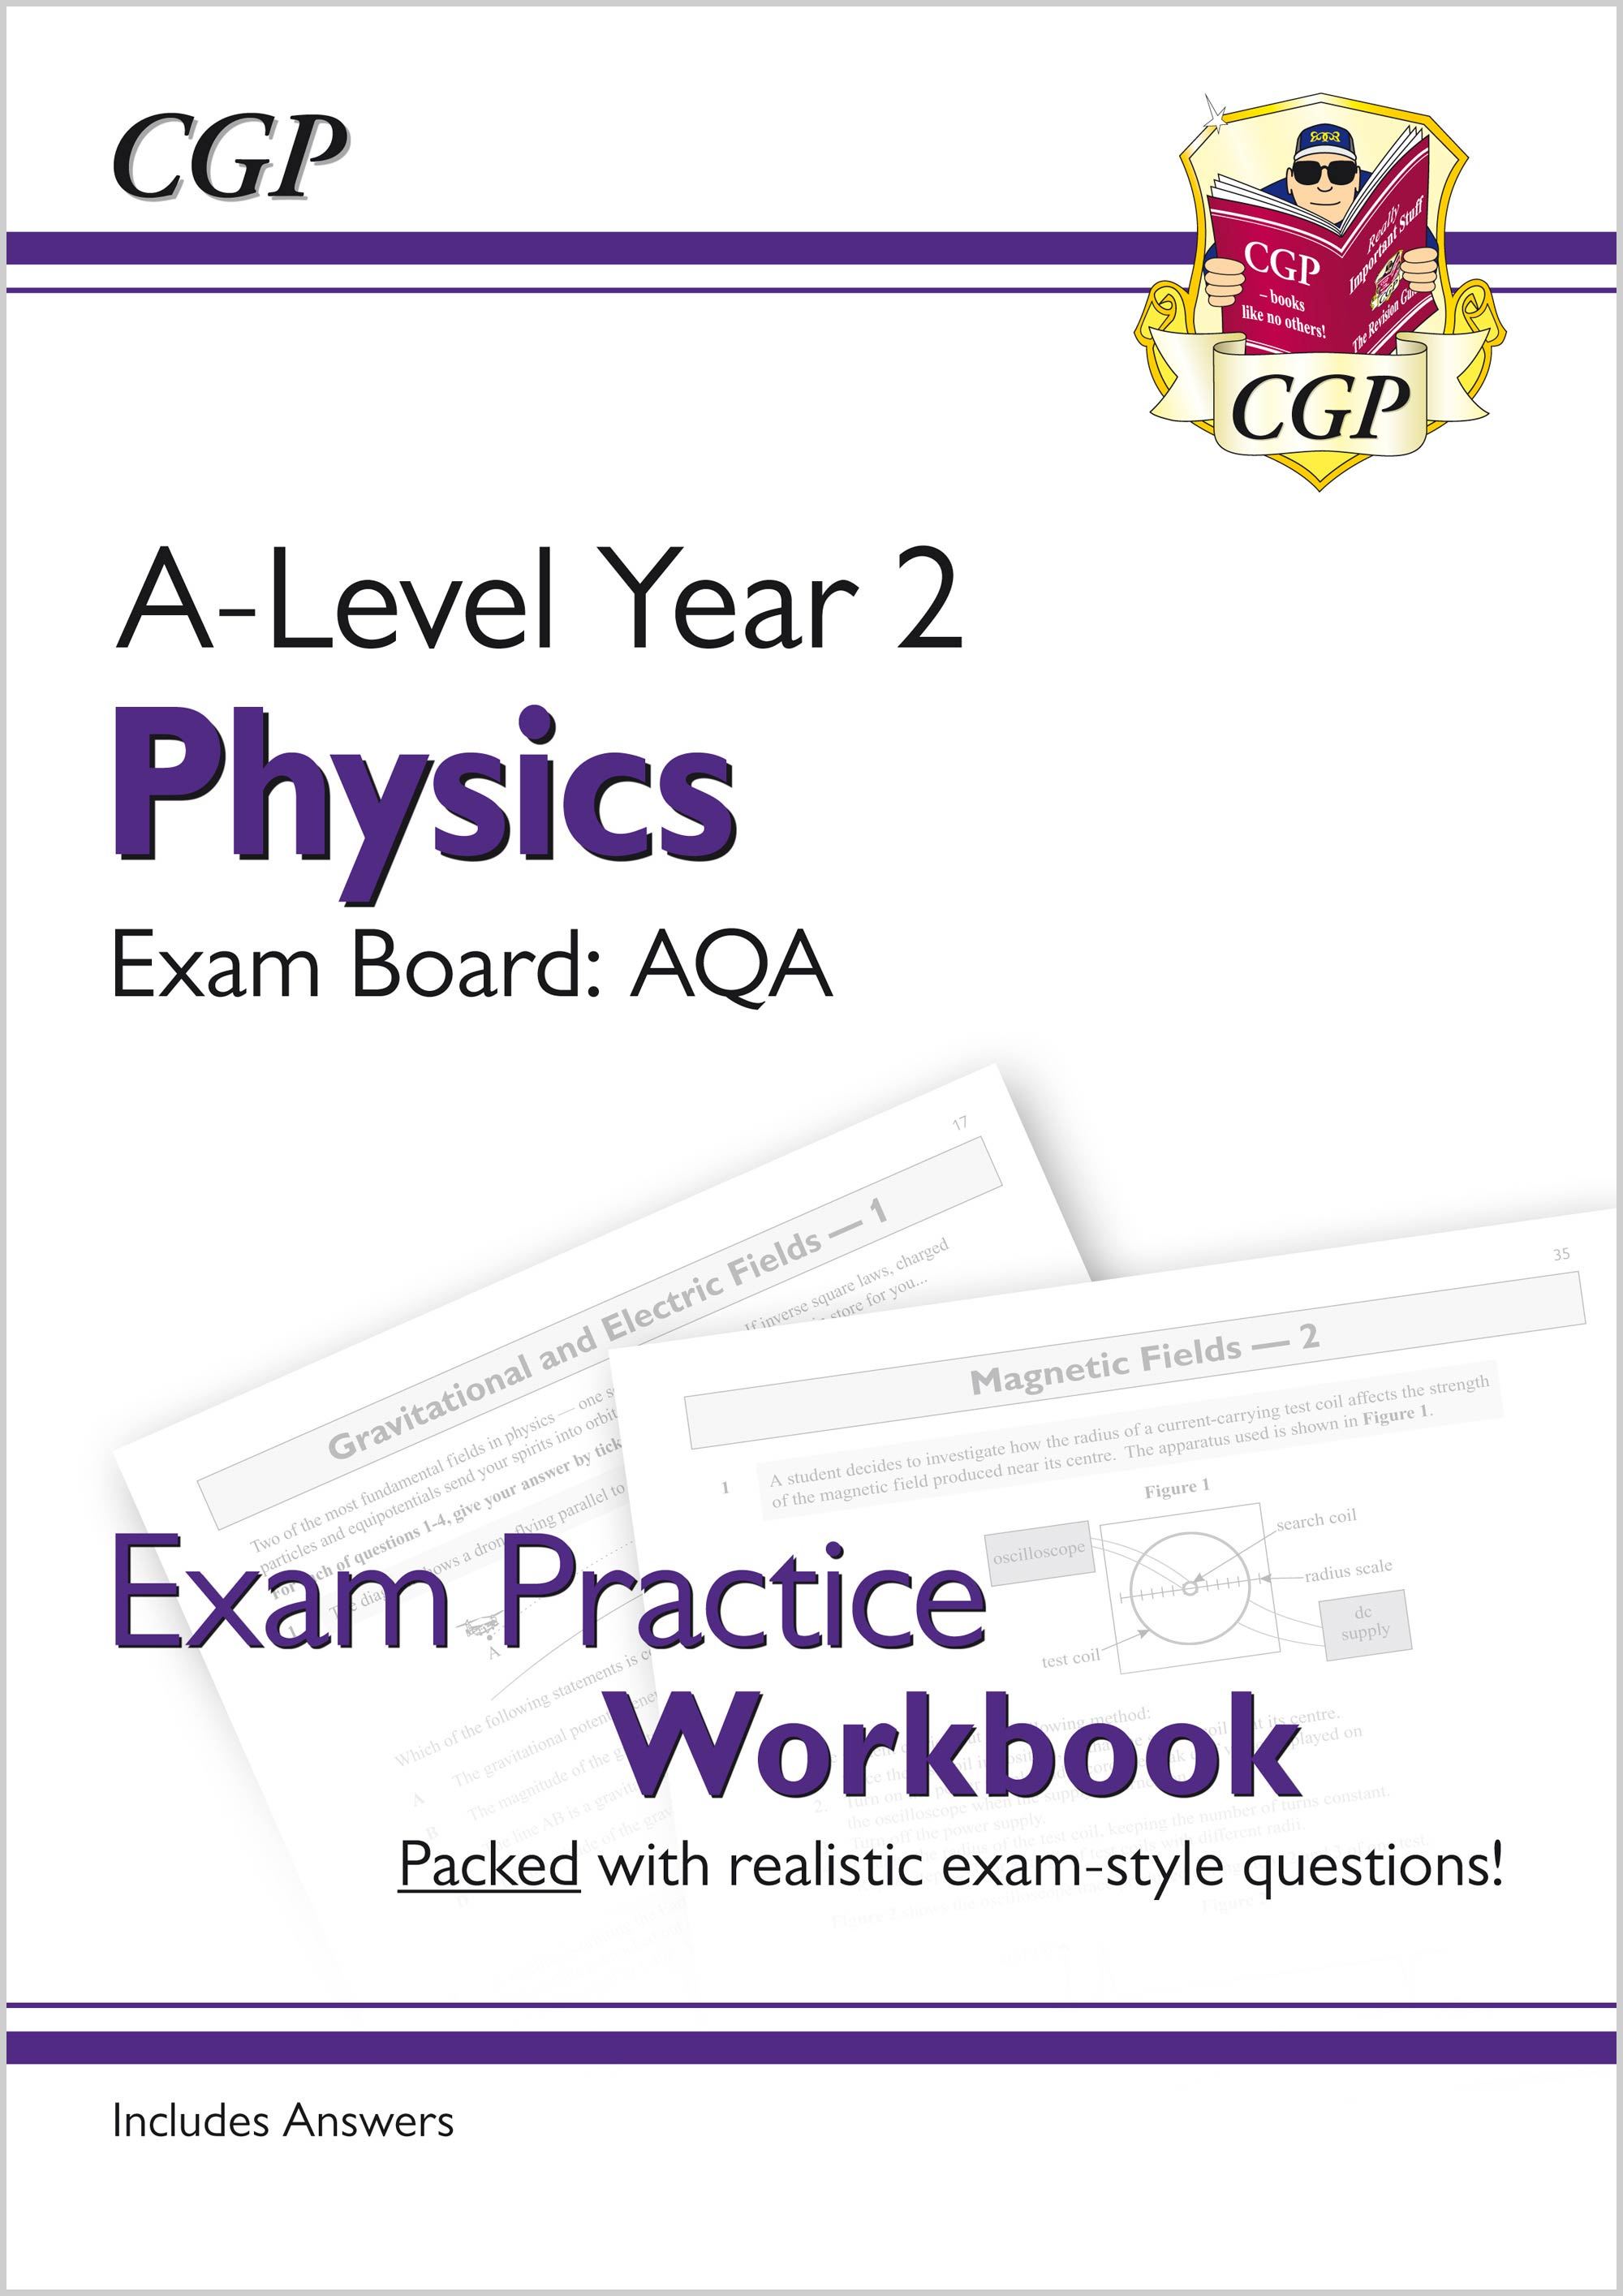 PAQ61 - New A-Level Physics for 2018: AQA Year 2 Exam Practice Workbook - includes Answers